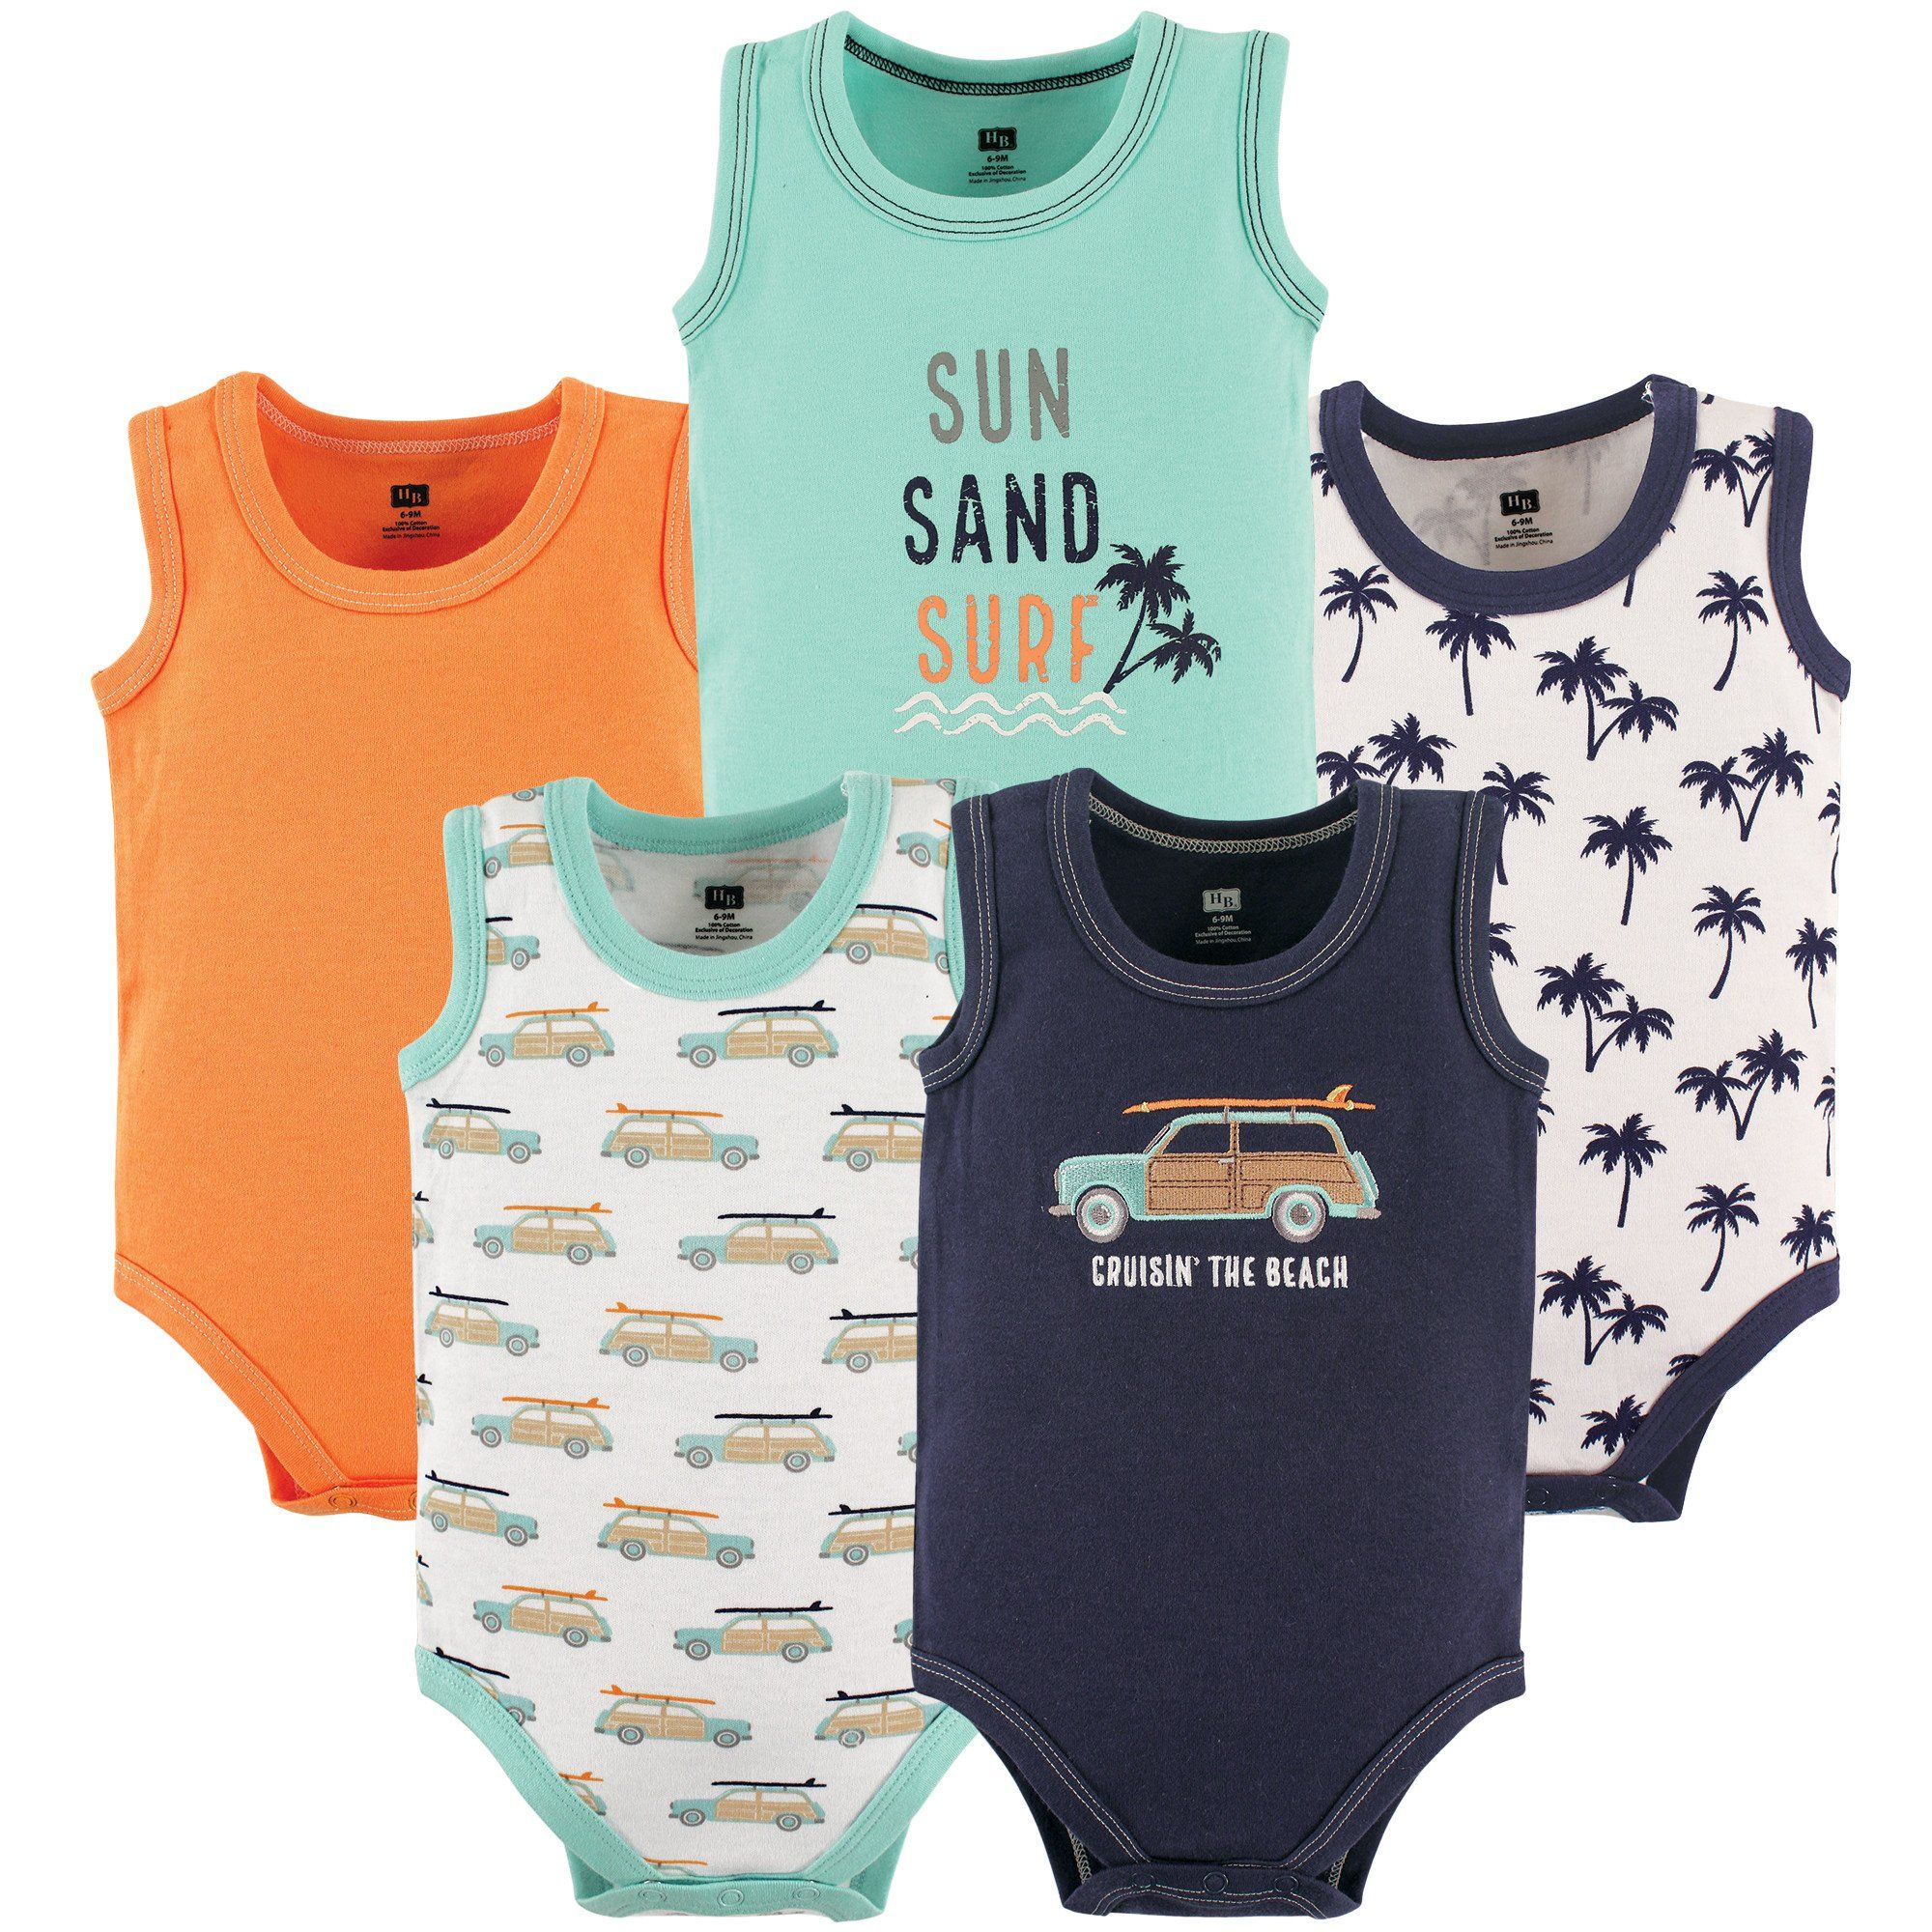 A Cute Baby Unisex Baby Sleeveless Bodysuit